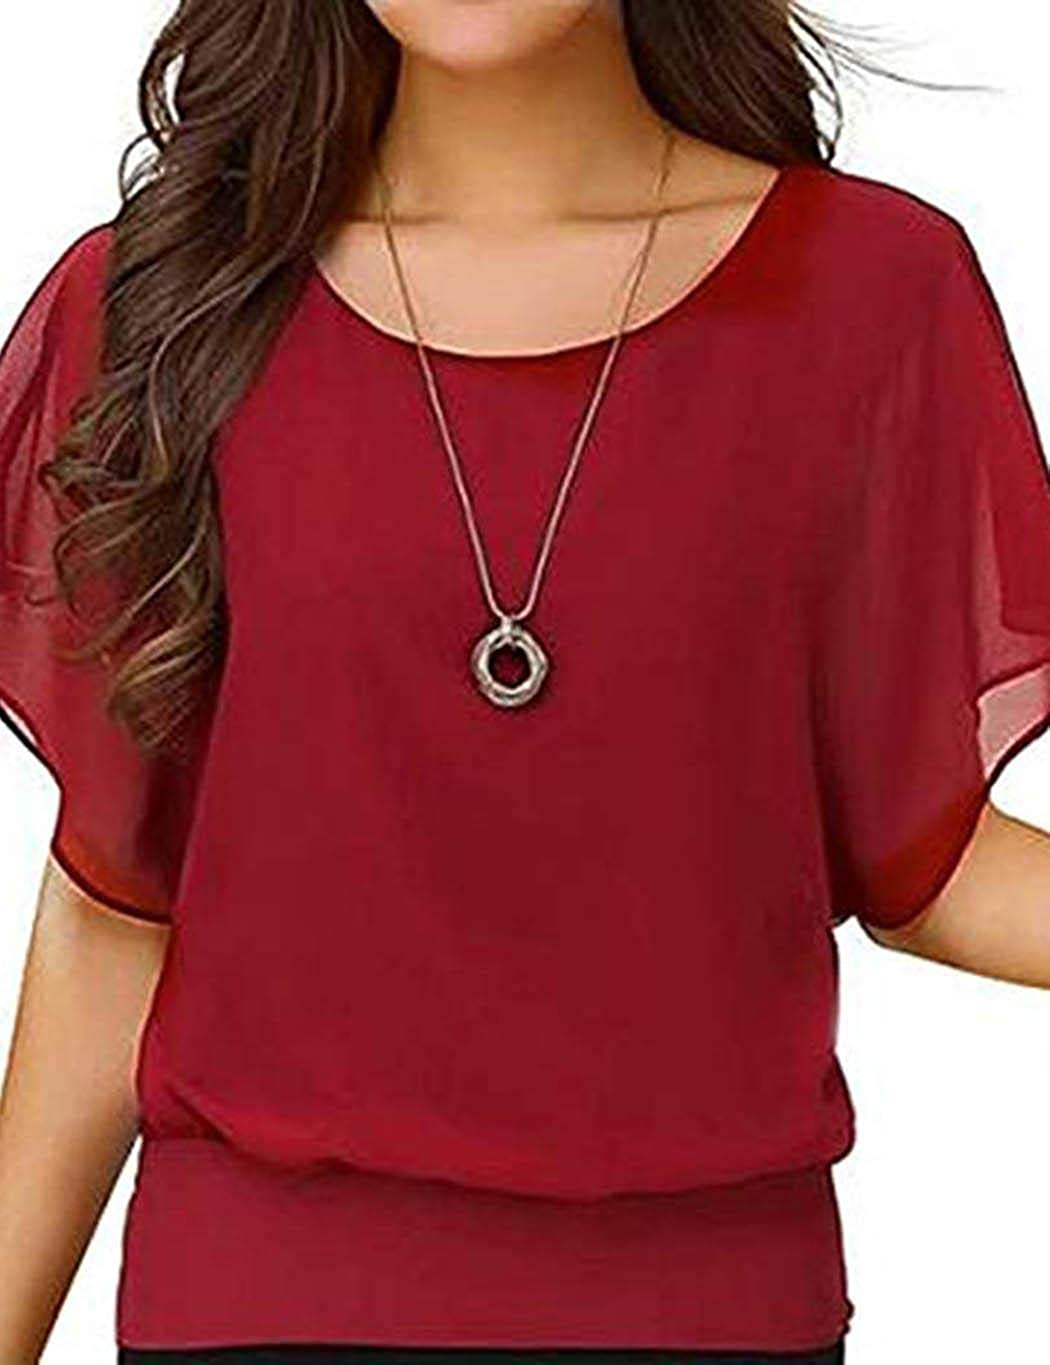 HOTUEEN Women Casual Round Neck Short Sleeve Large Size Chiffon Top Blouses